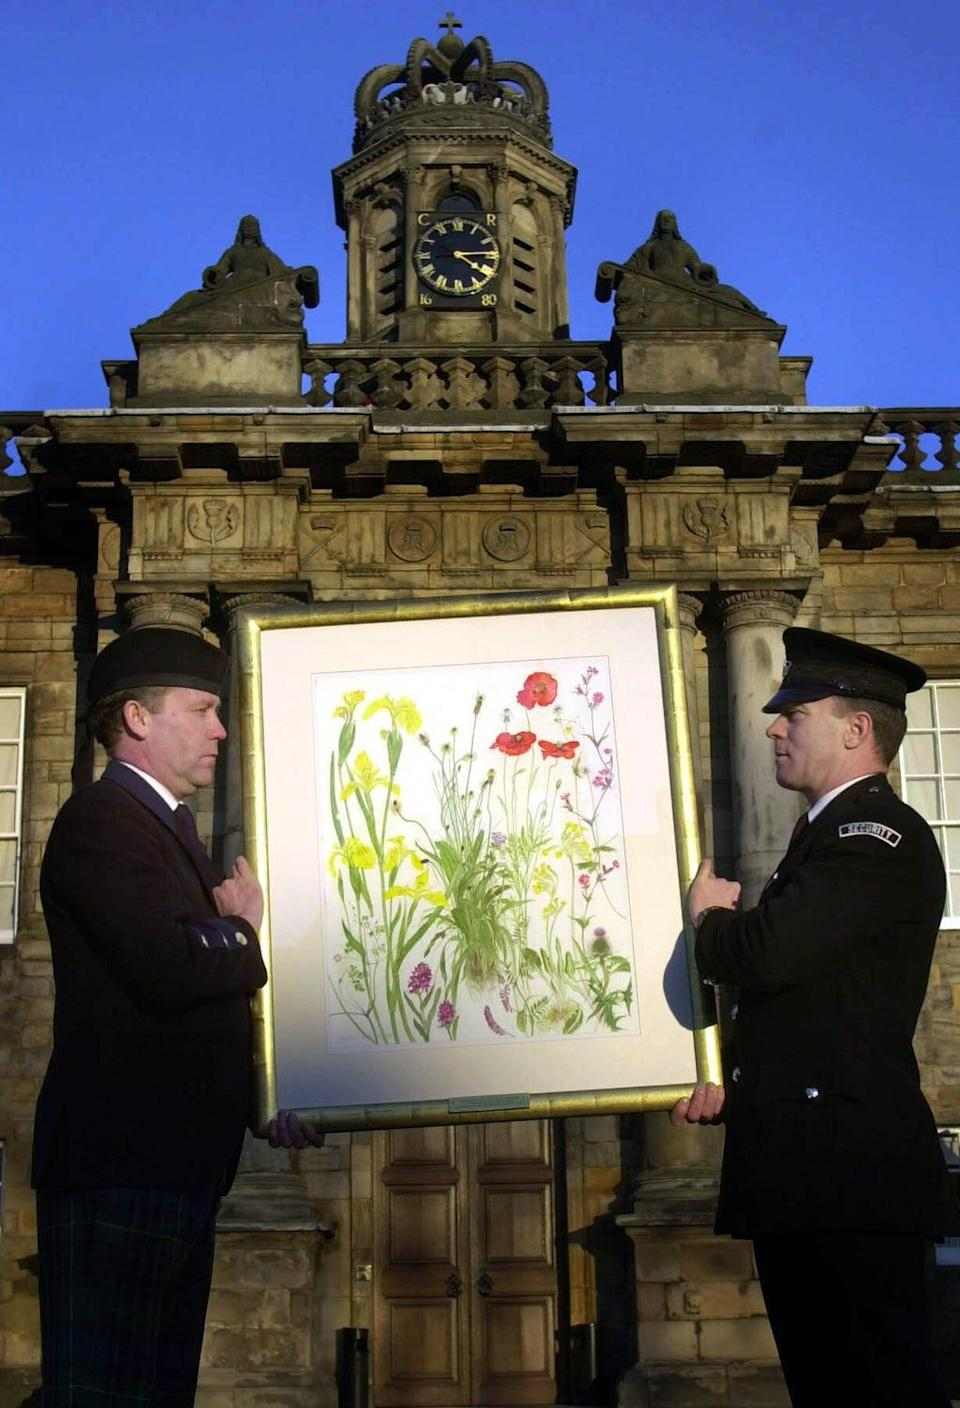 A painting by Dame Elizabeth Blackadder is carried in to the Palace of Holyroodhouse after she was appointed Her Majesty's Painter and Limner (Ben Curtis/PA) (PA Archive)